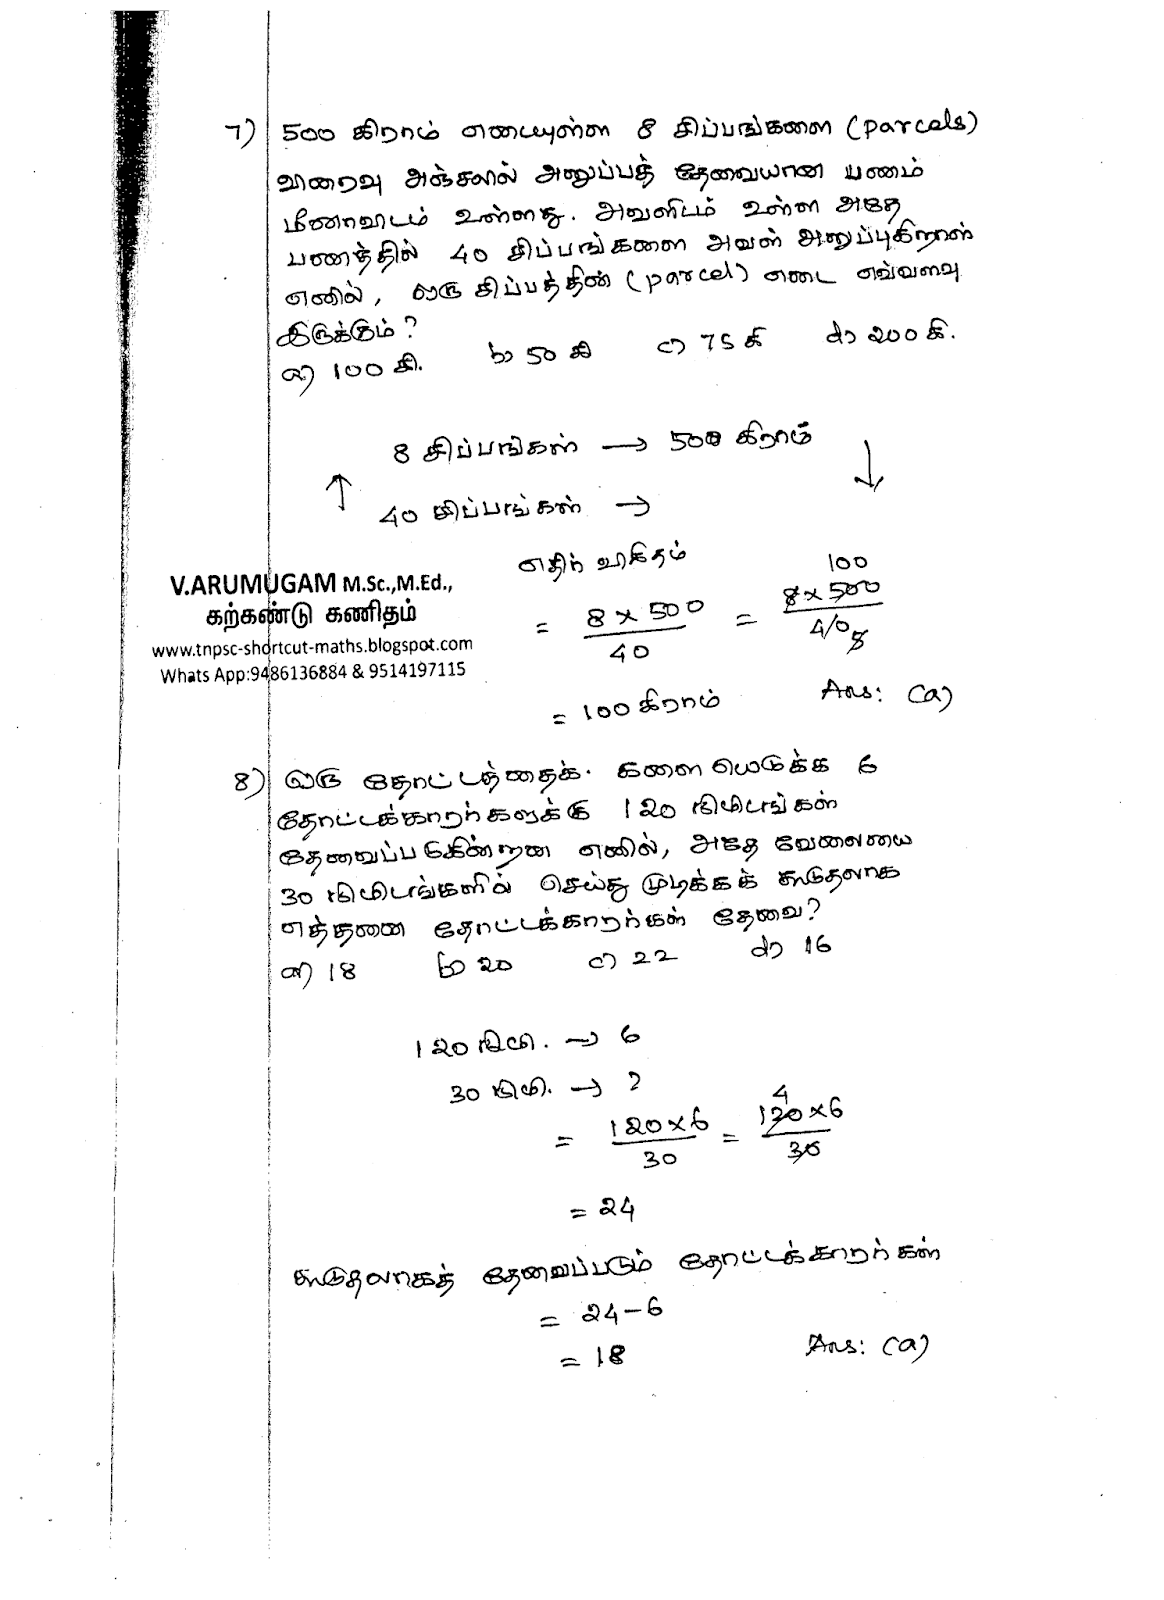 2019 - NEW SYLLABUS - VII STD - I TERM - UNIT-4: DIRECT & INVERSE PROPORTIONS - PAGE - 14/29